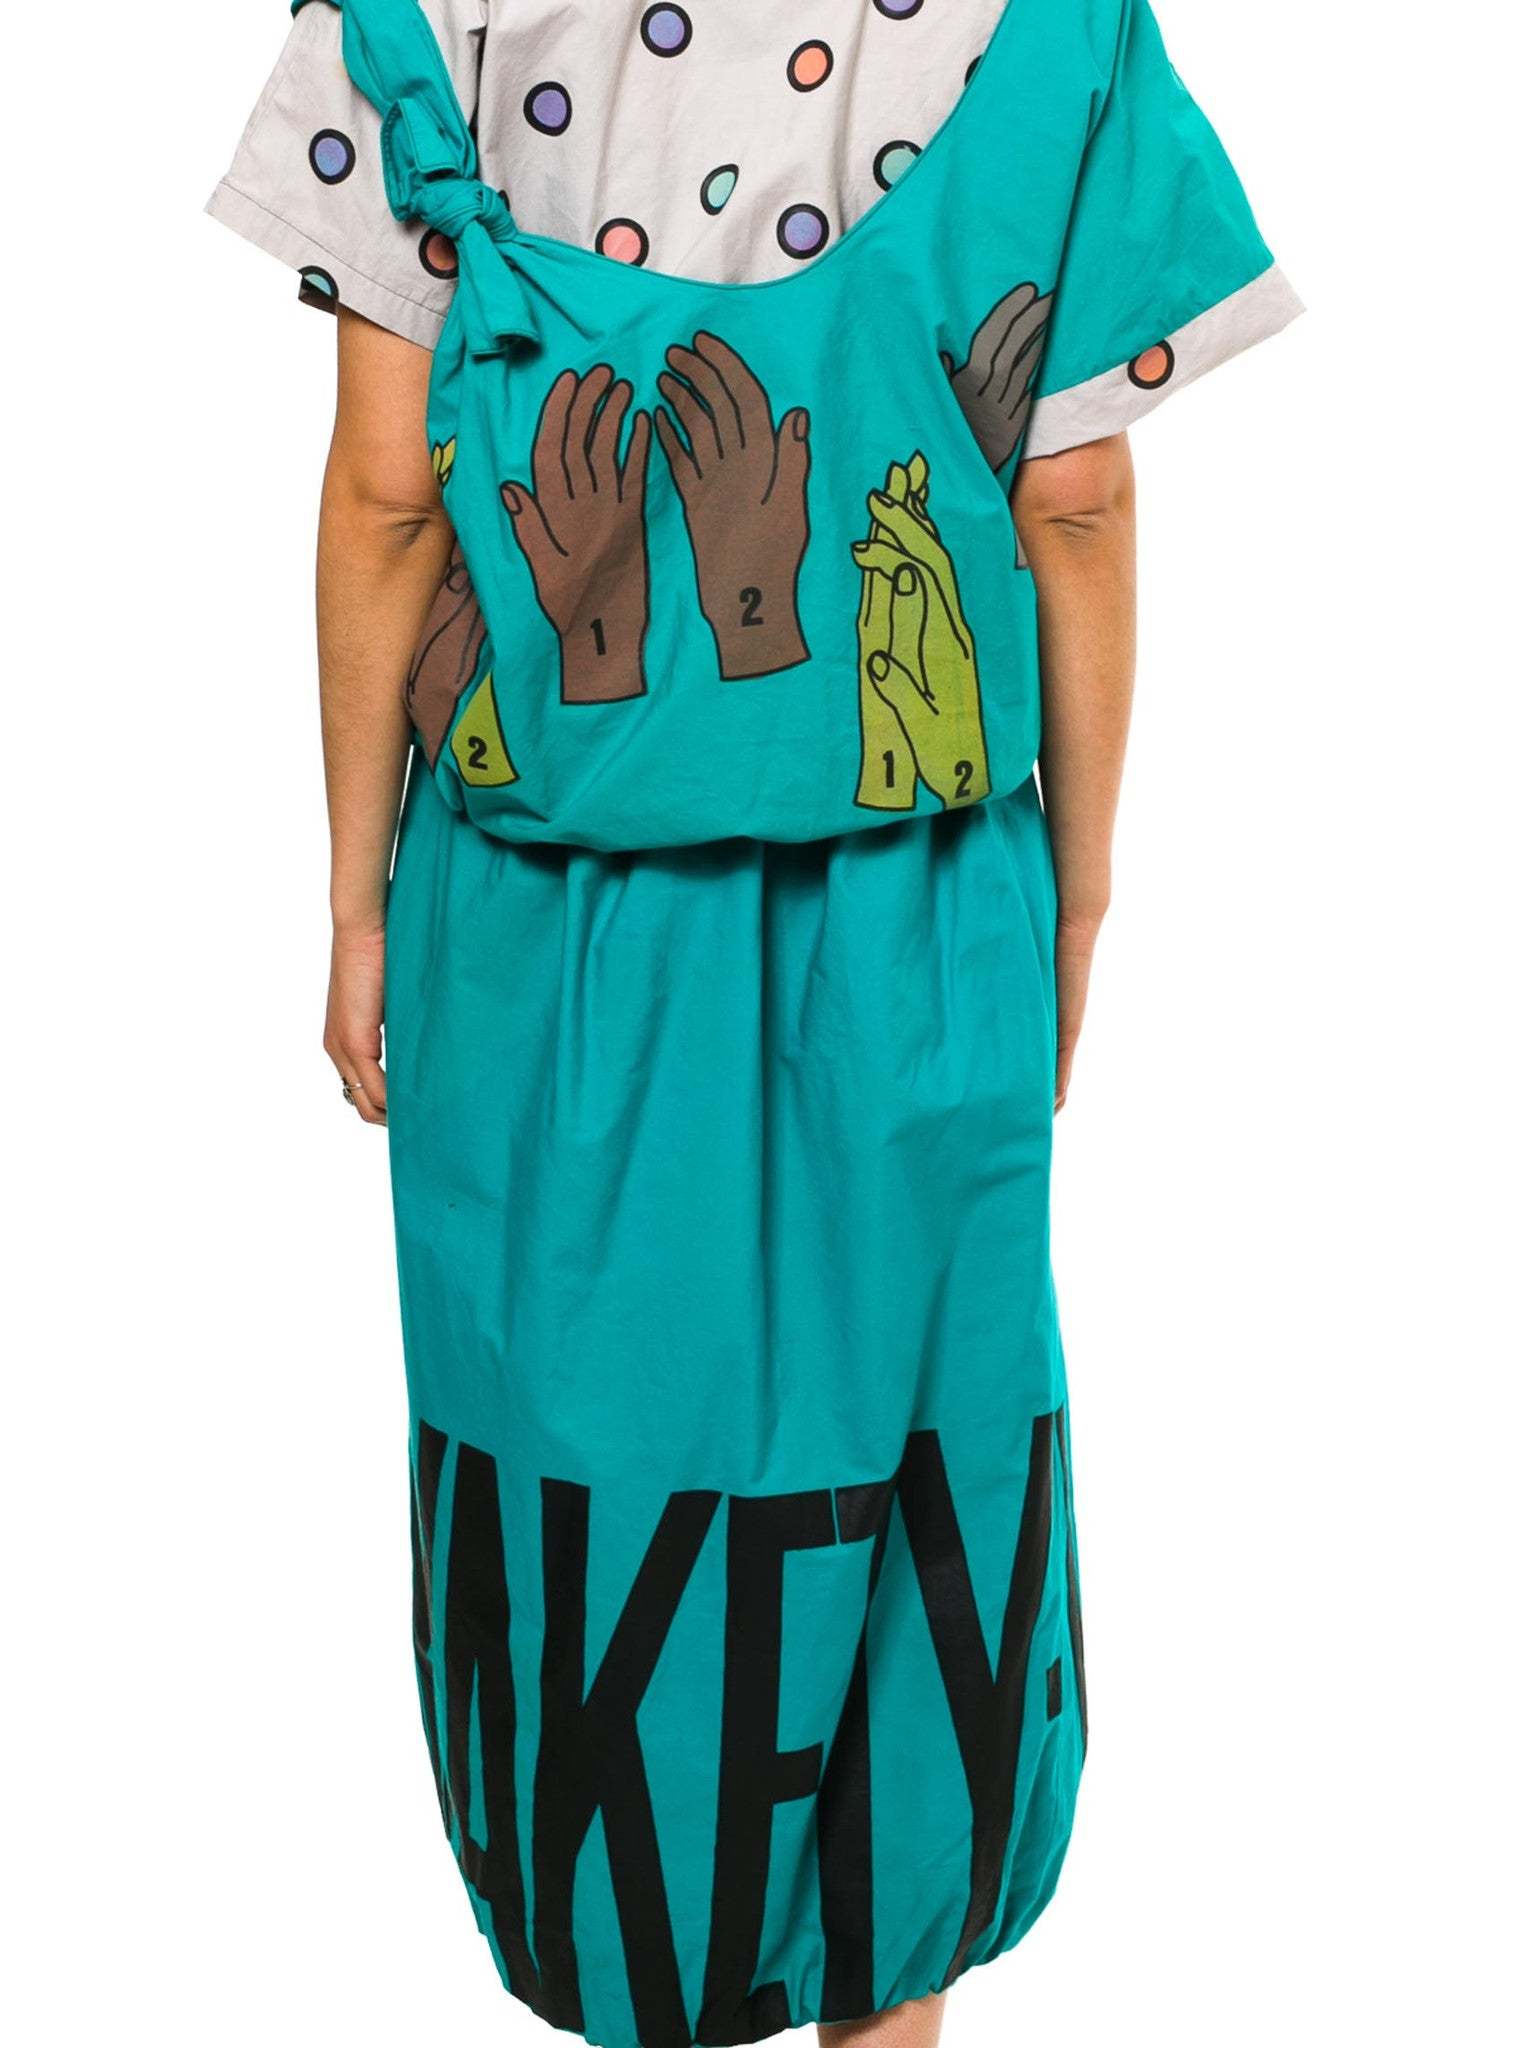 "1980S Teal Cotton ""Clap Your Hands Say Yakety-Yak!!"" Shirt & Skirt Ensemble"